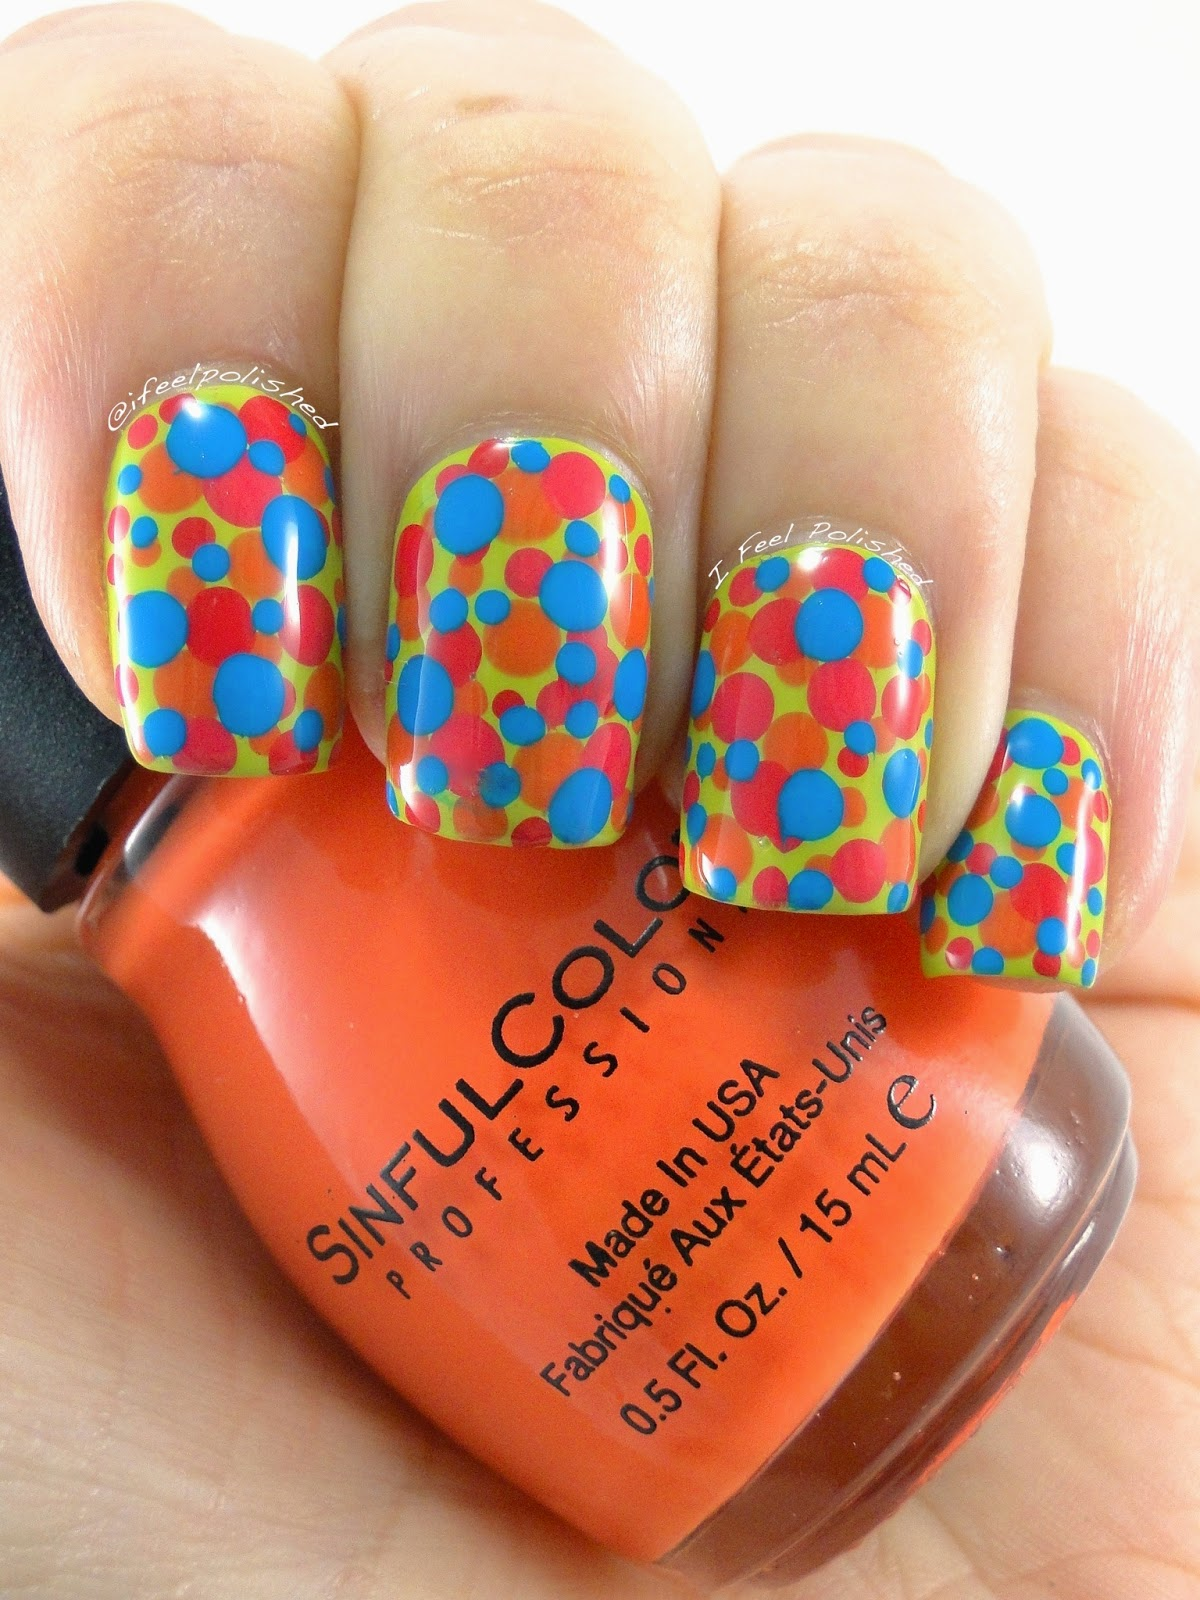 SinfulColors Spring Fever Collection